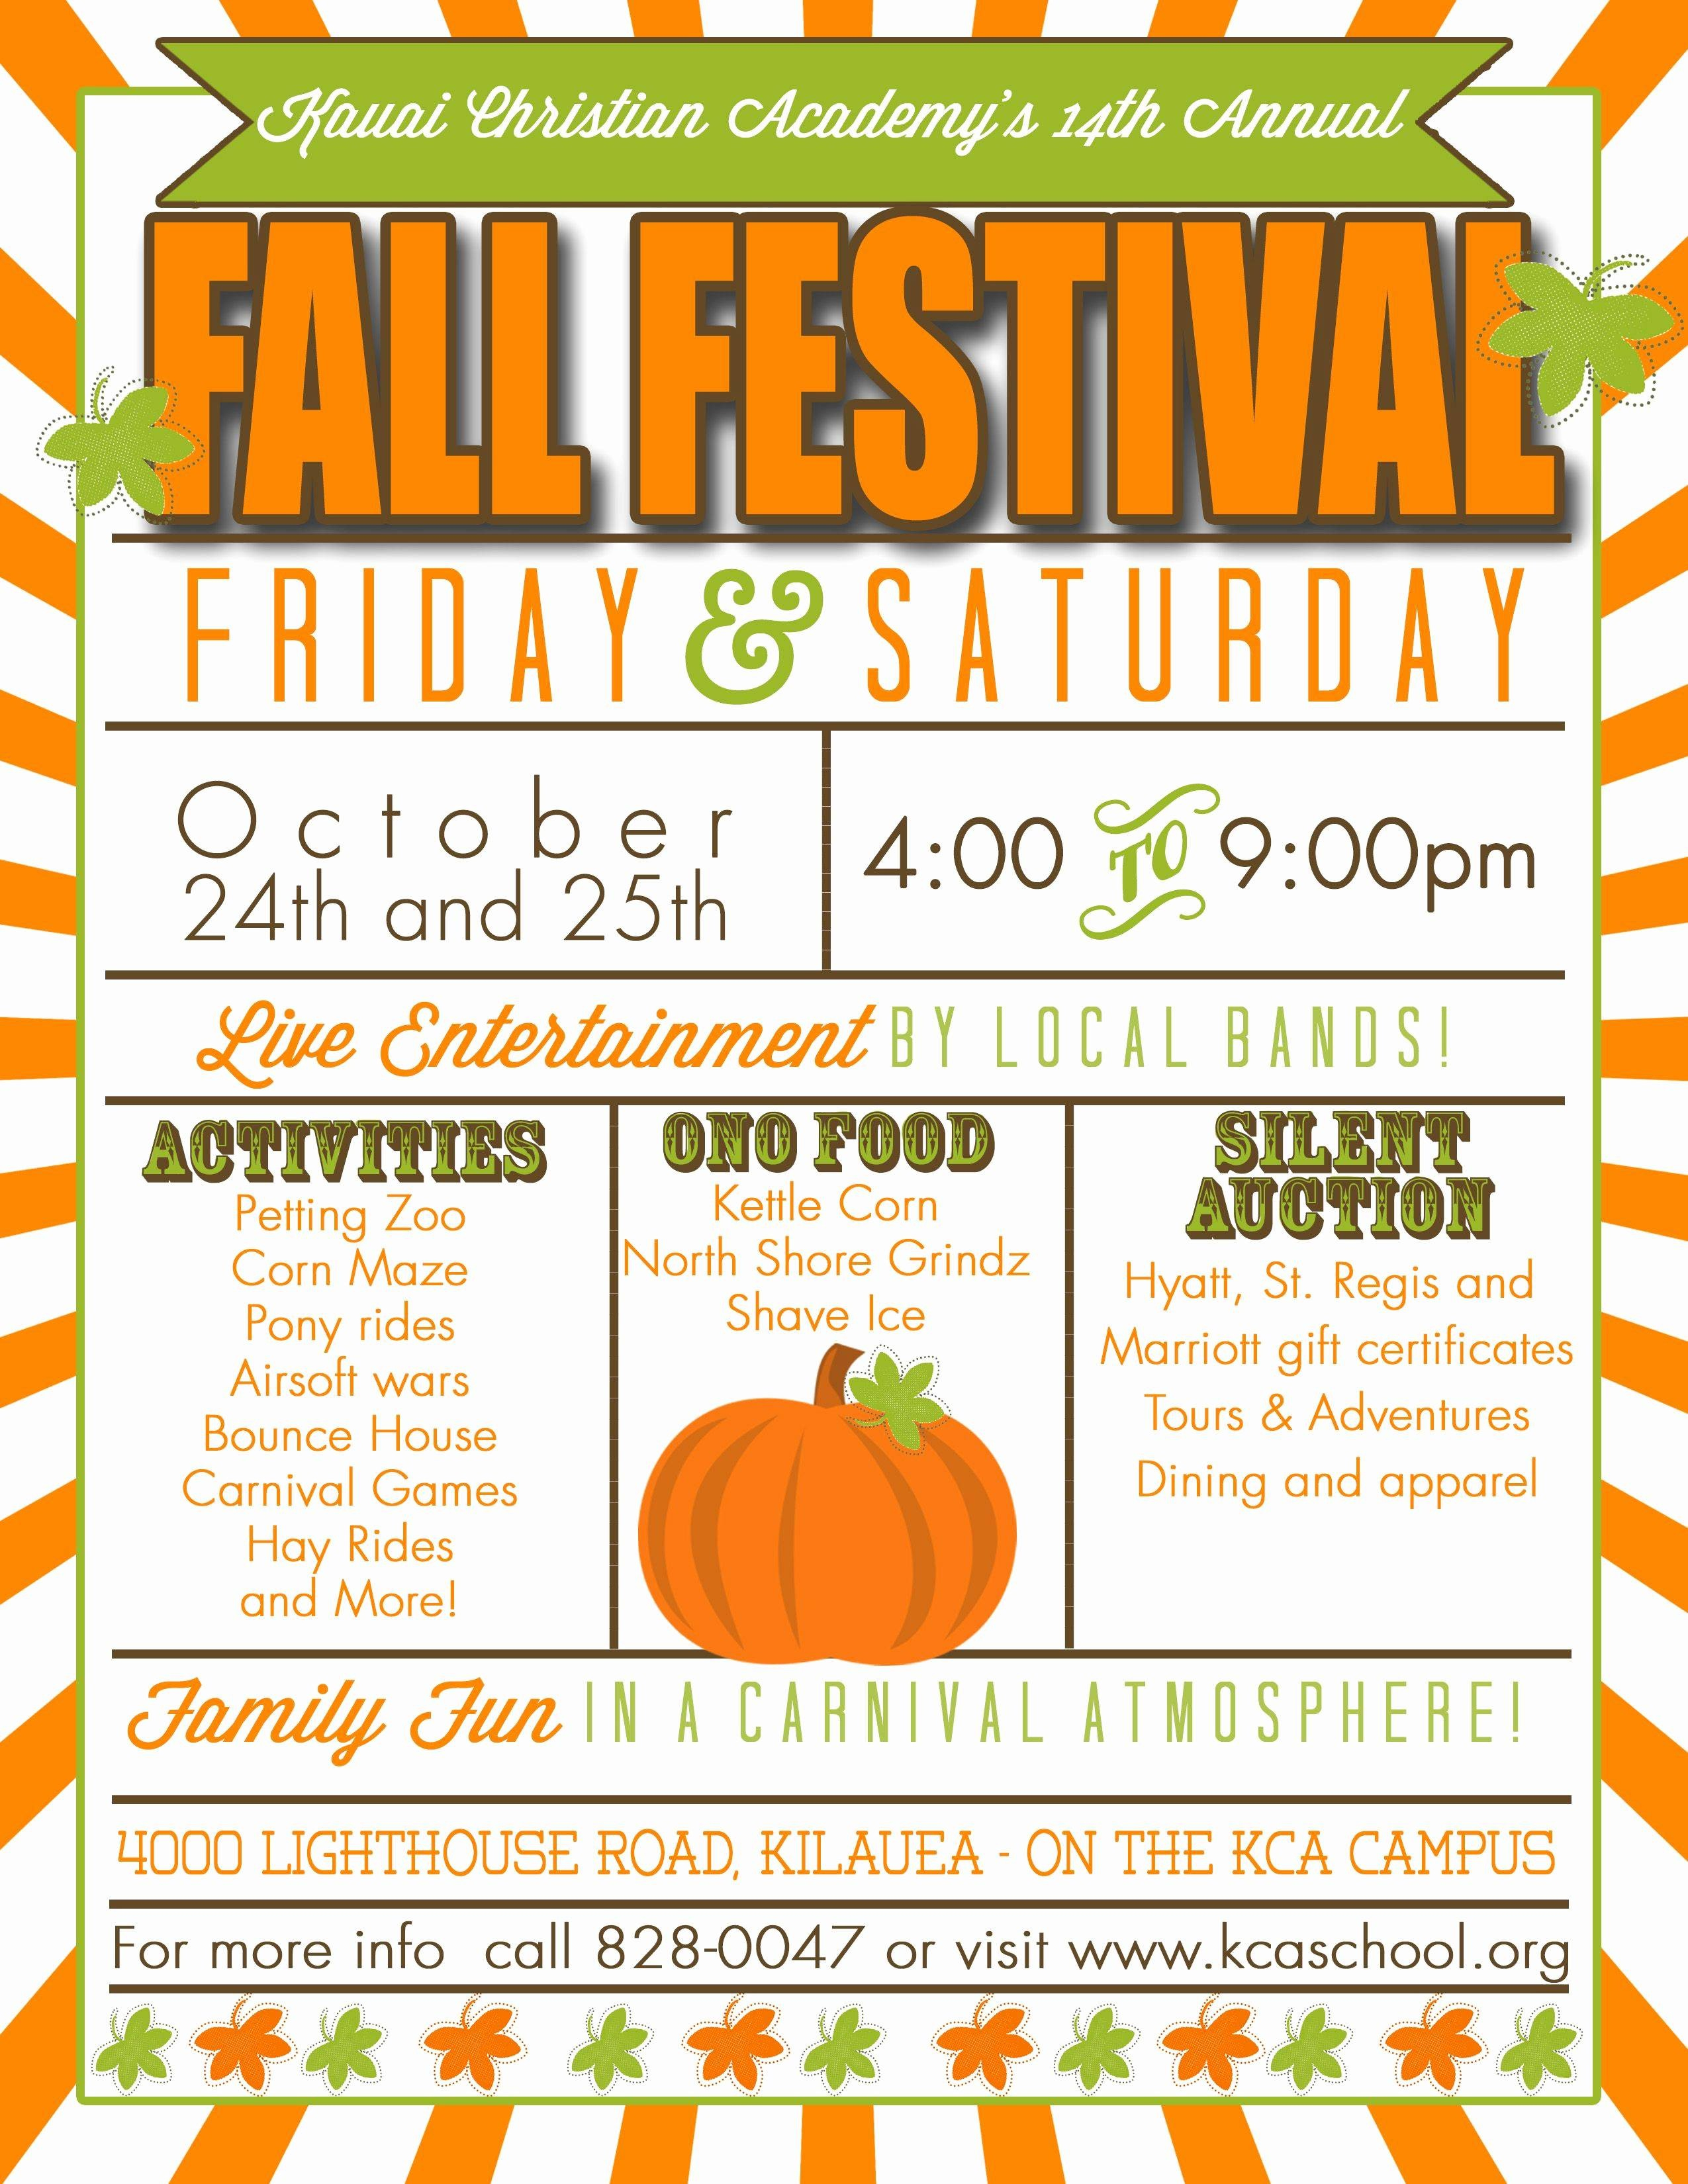 13 Free Printable Fall Festival Flyer Templates Template Modern - Free Printable Fall Festival Flyer Templates